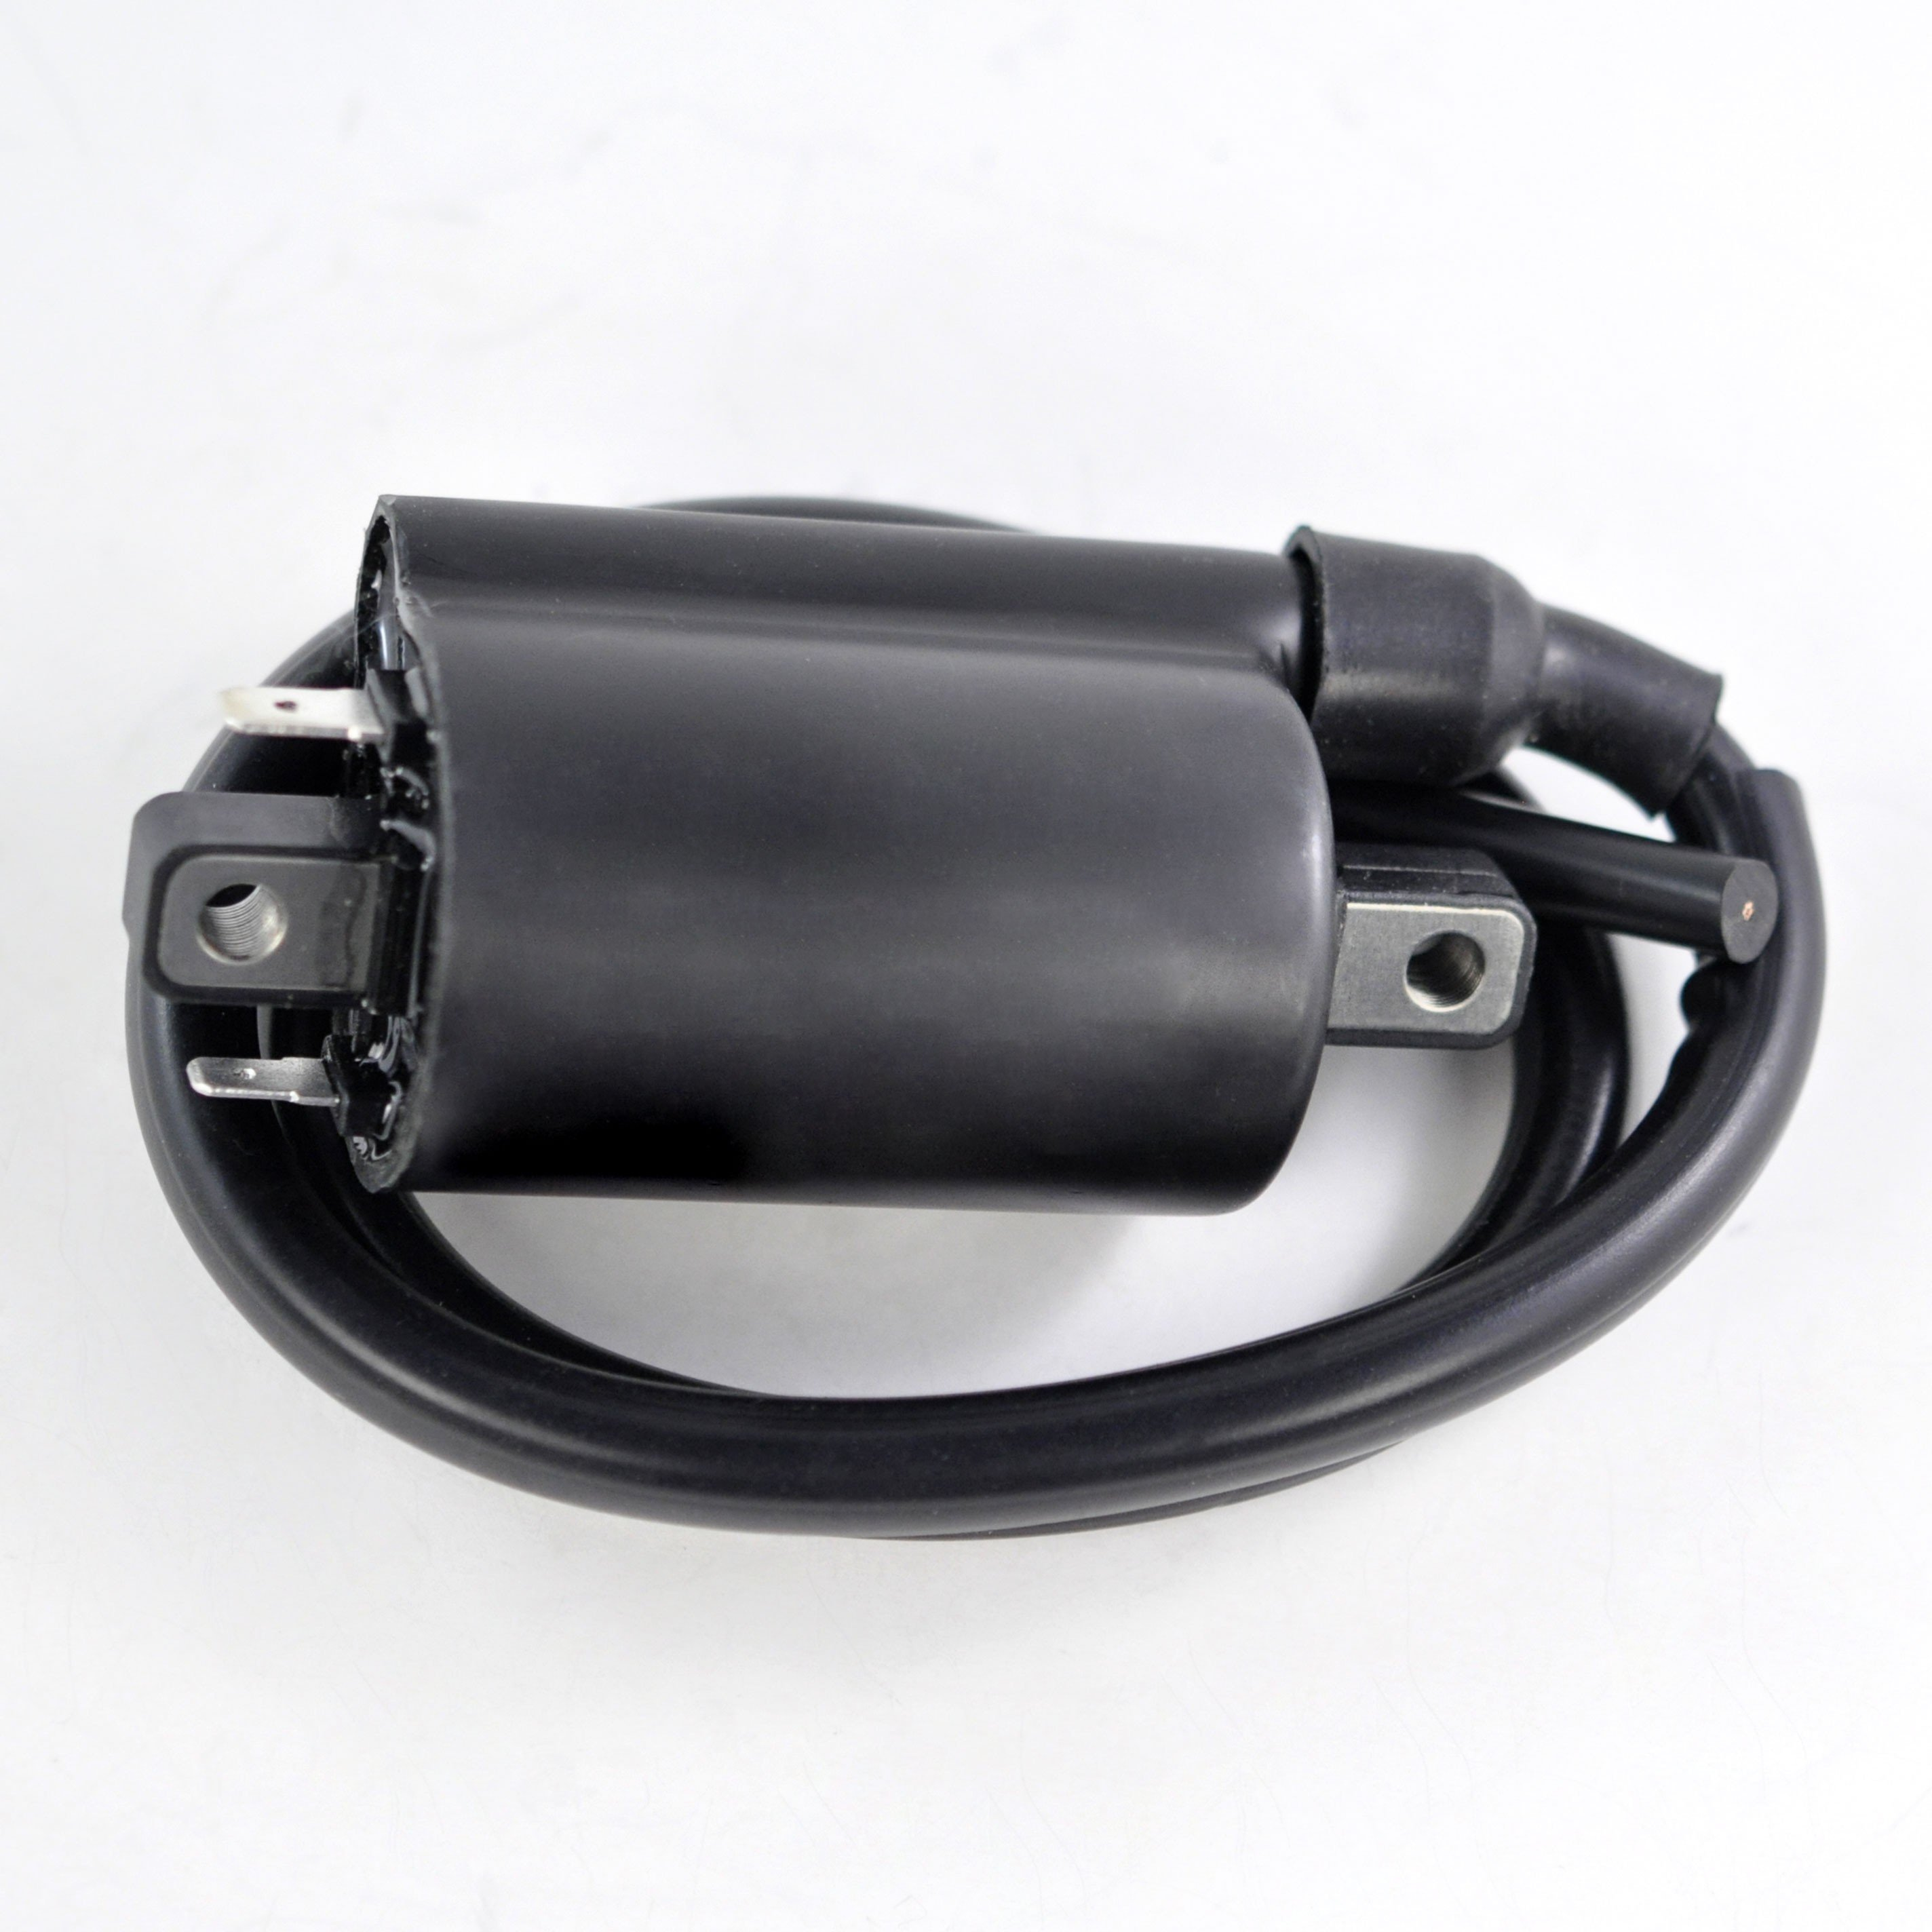 External Ignition Coil | Kawasaki | KLR650 | Mule | 3000 | Suzuki